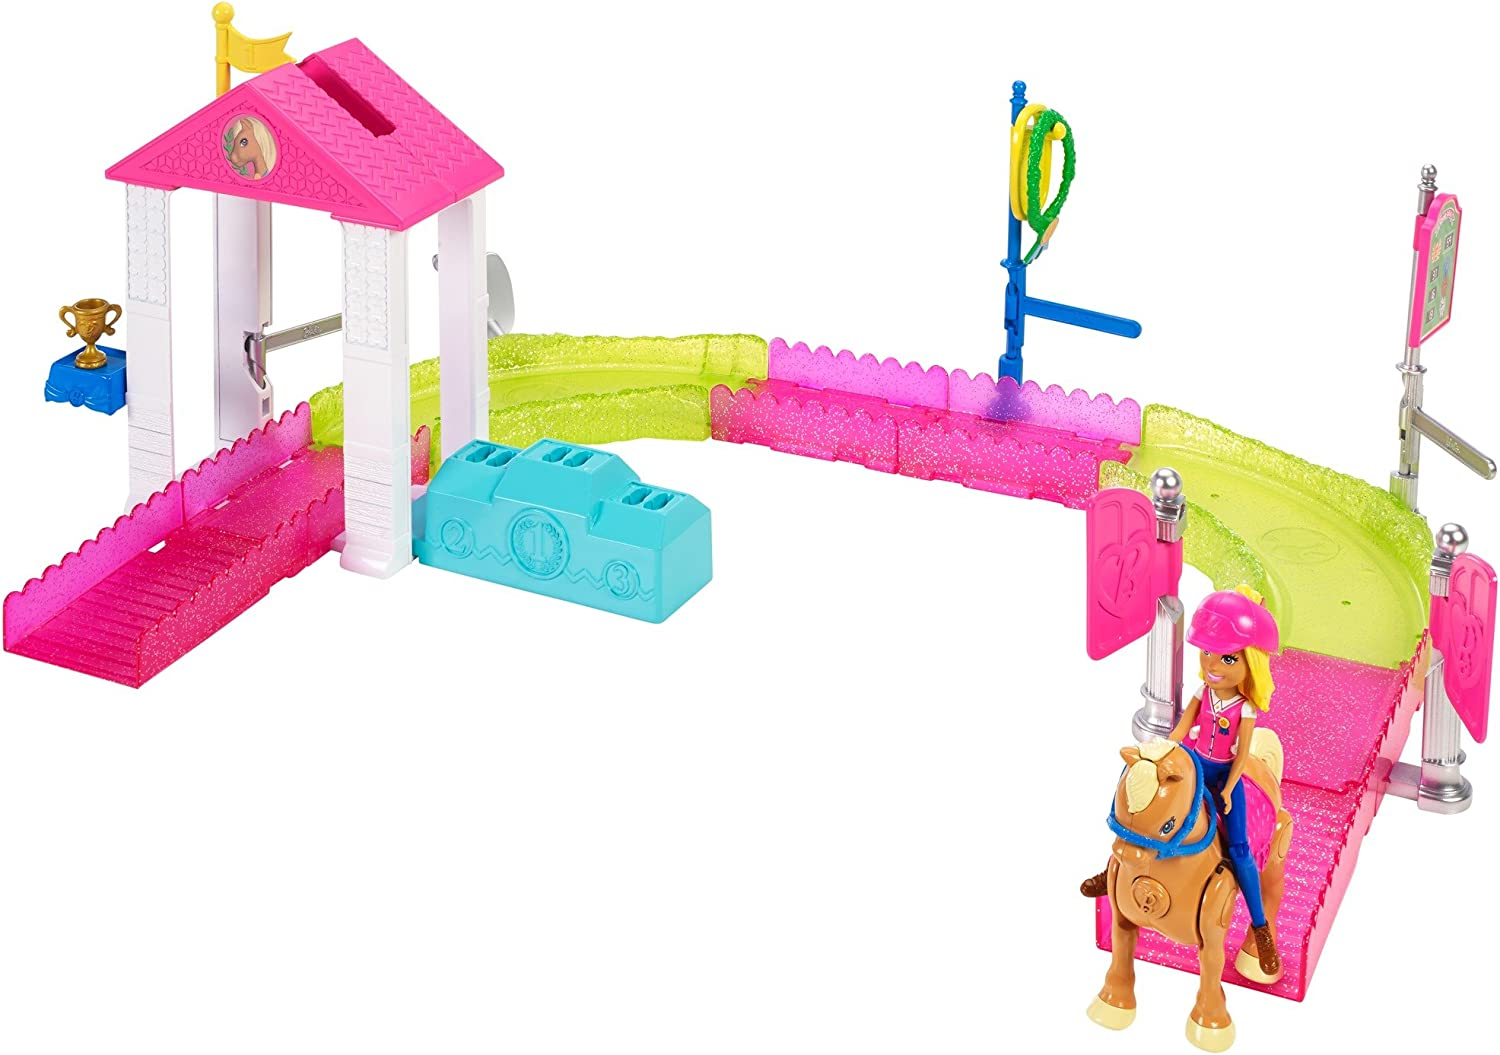 Barbie On the Go, carrera de ponis, muñeca con accesorios y caballo (Mattel FHV66)